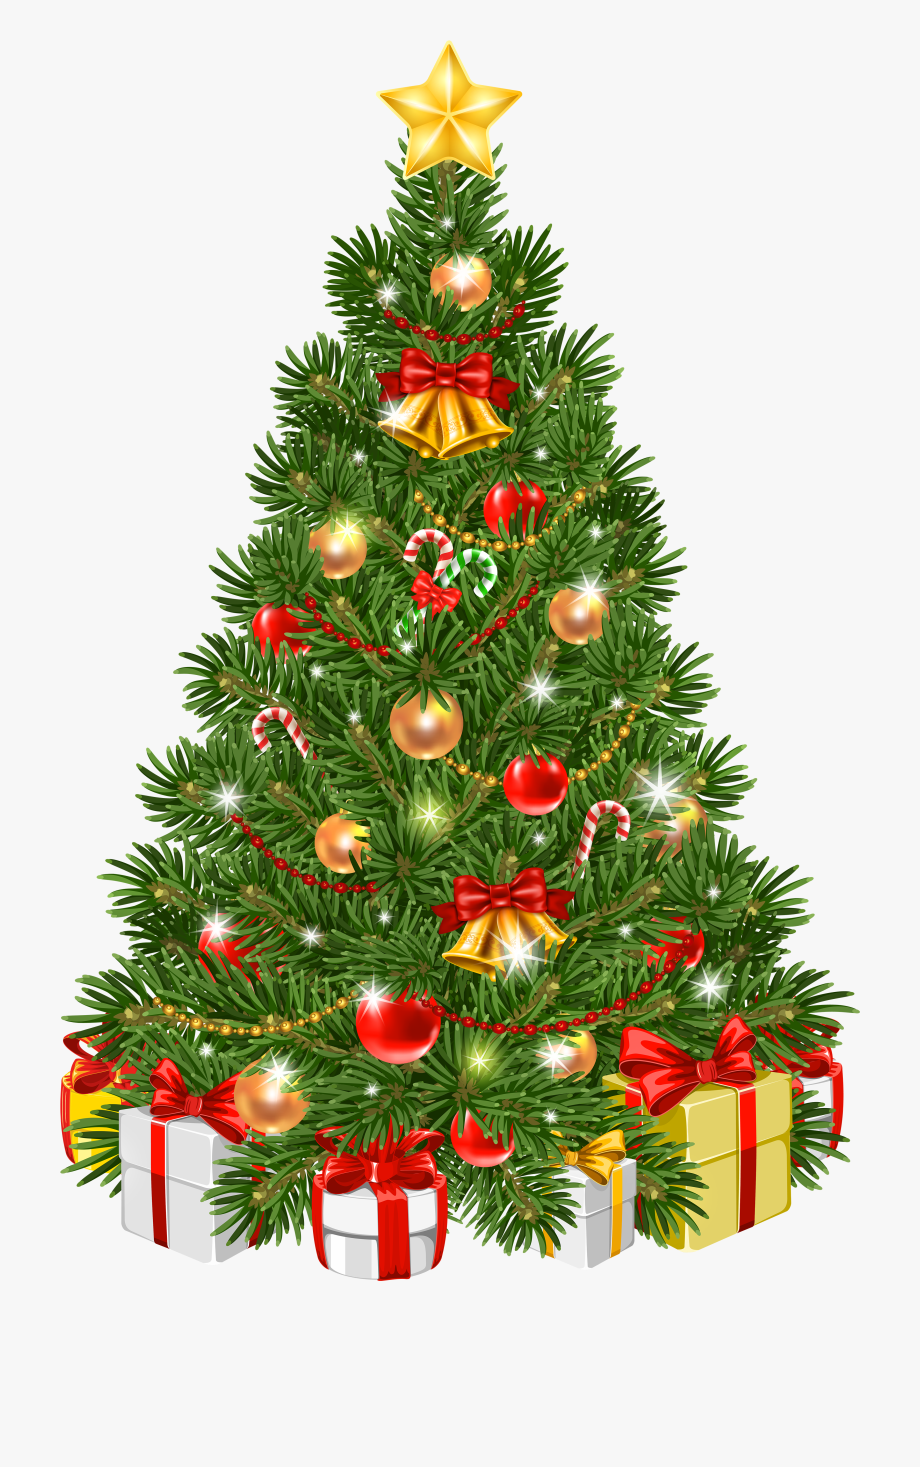 Decorated Transparent Png Clip Art Image Gallery Christmas Tree Clipart Hd Cliparts Christmas Tree Clipart Christmas Tree Decorations Green Christmas Tree